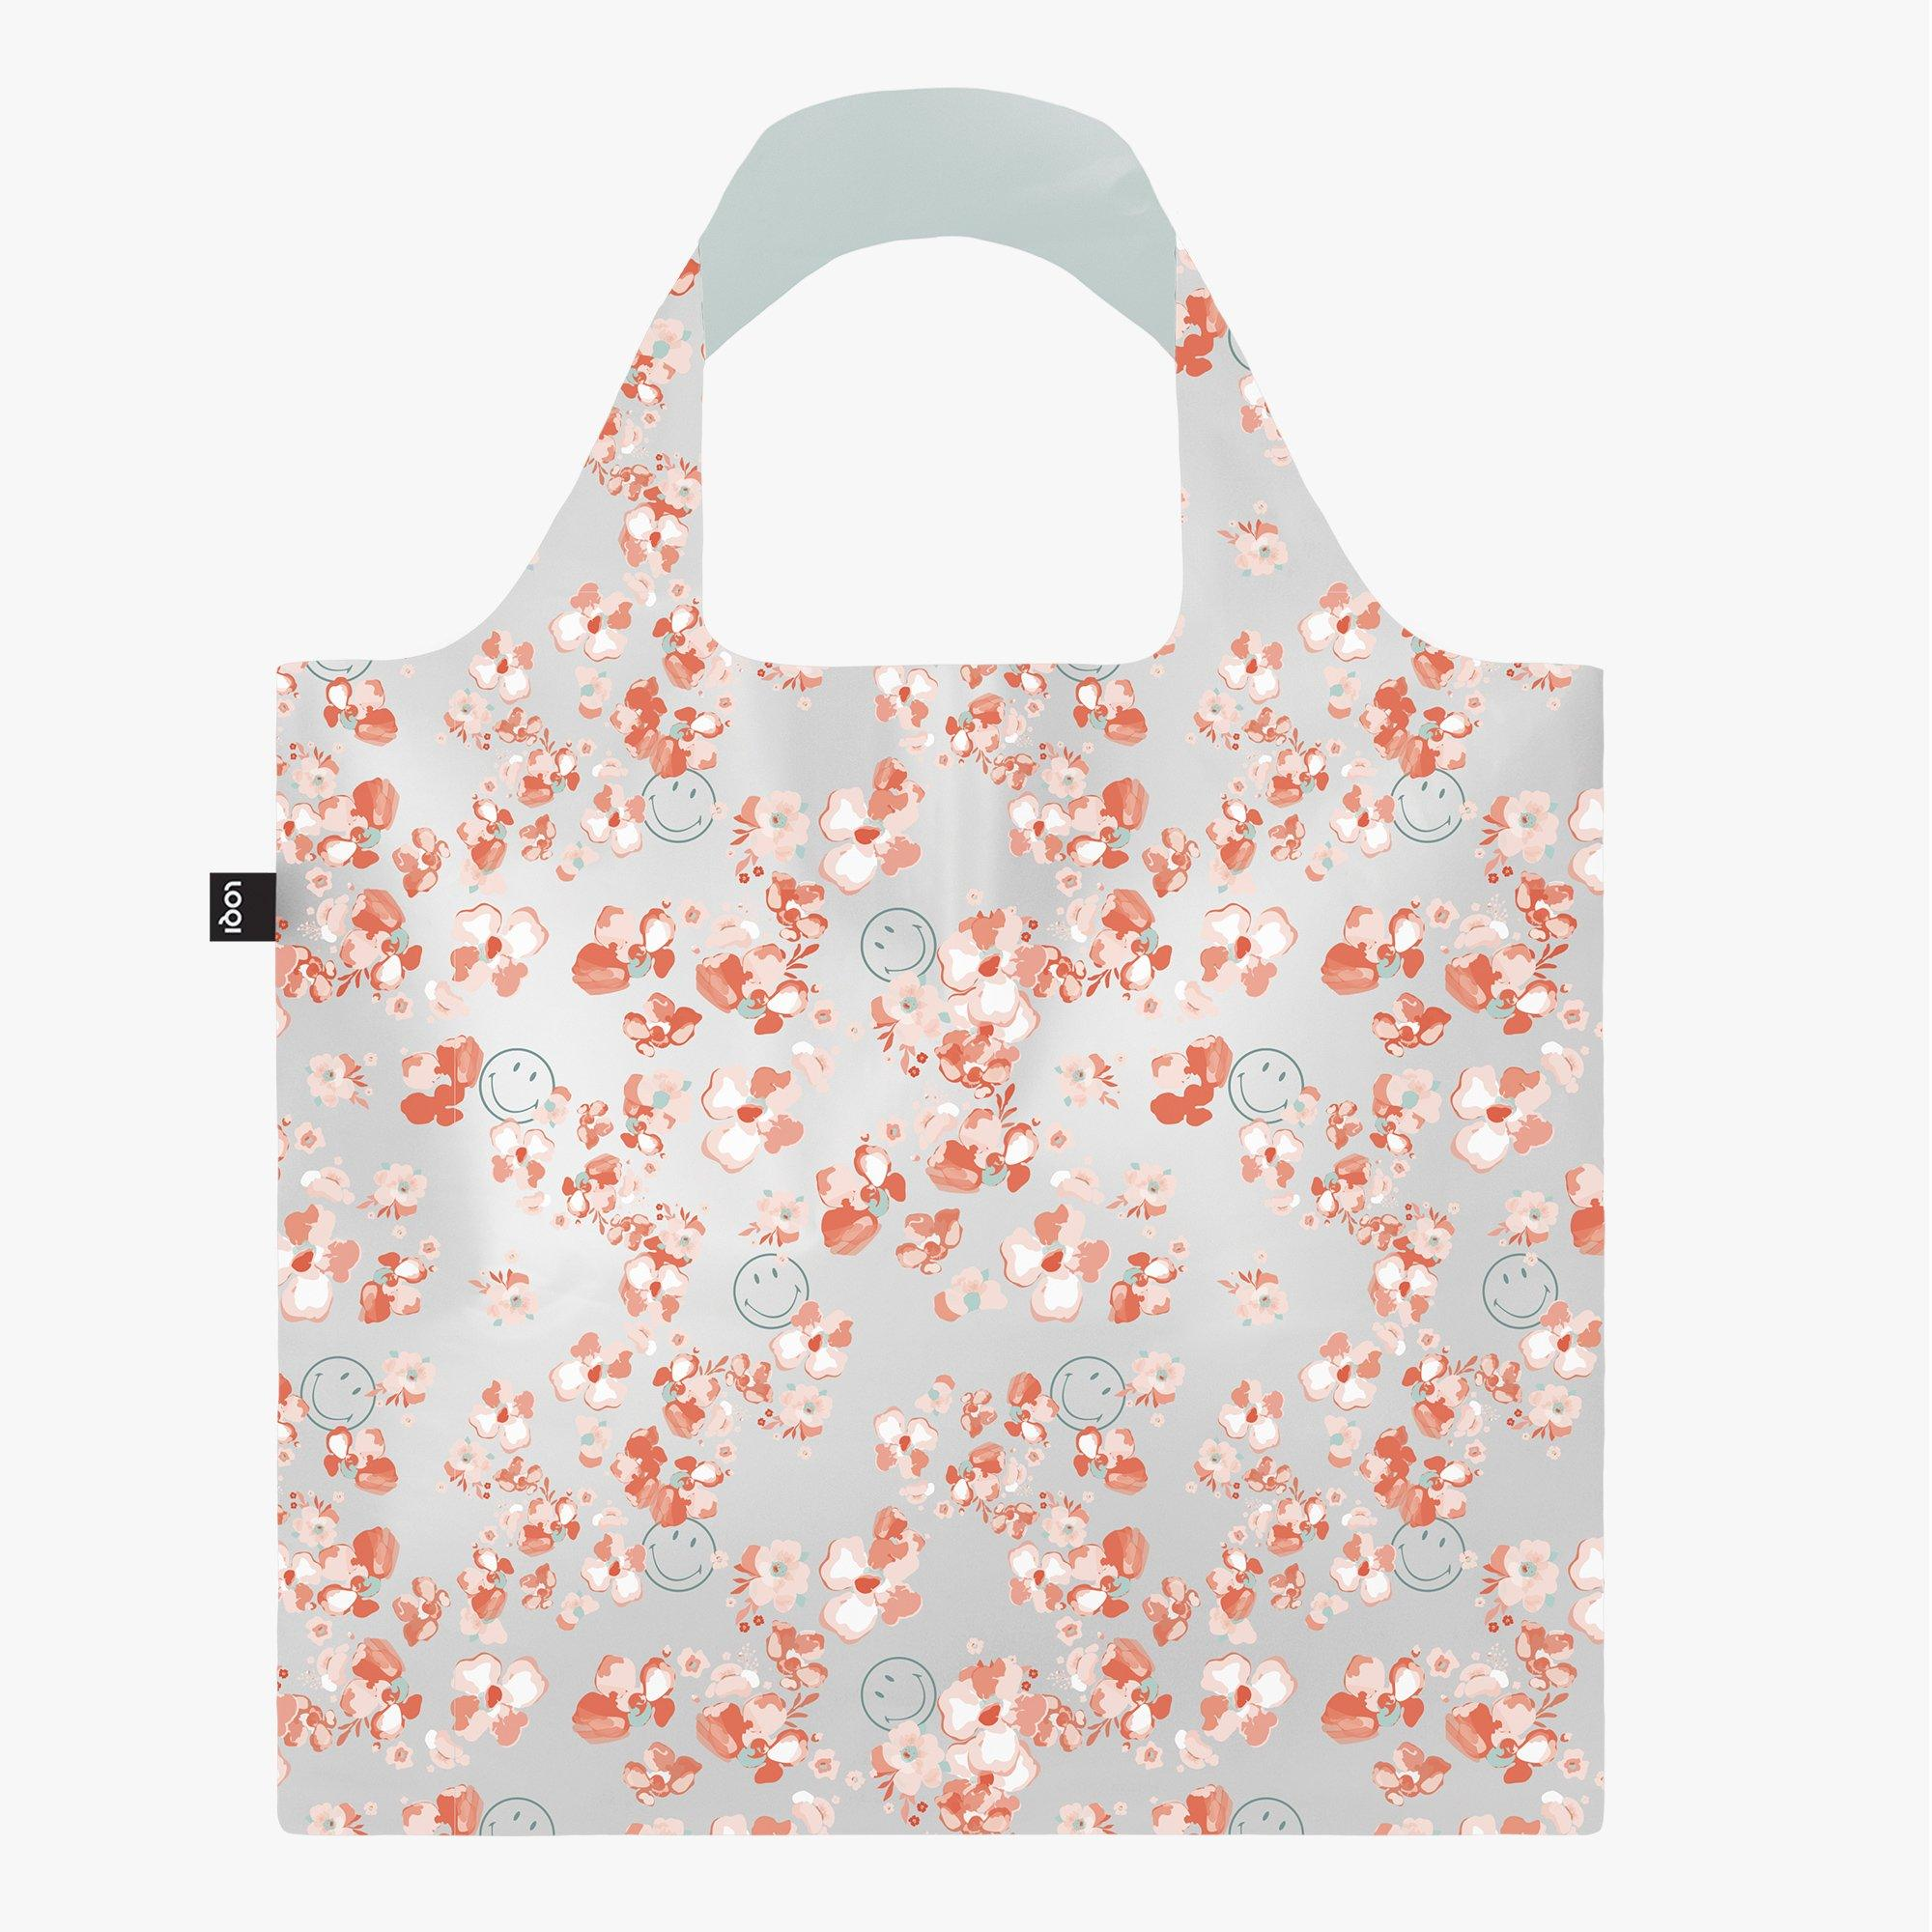 transparent-milky-blossom-bag